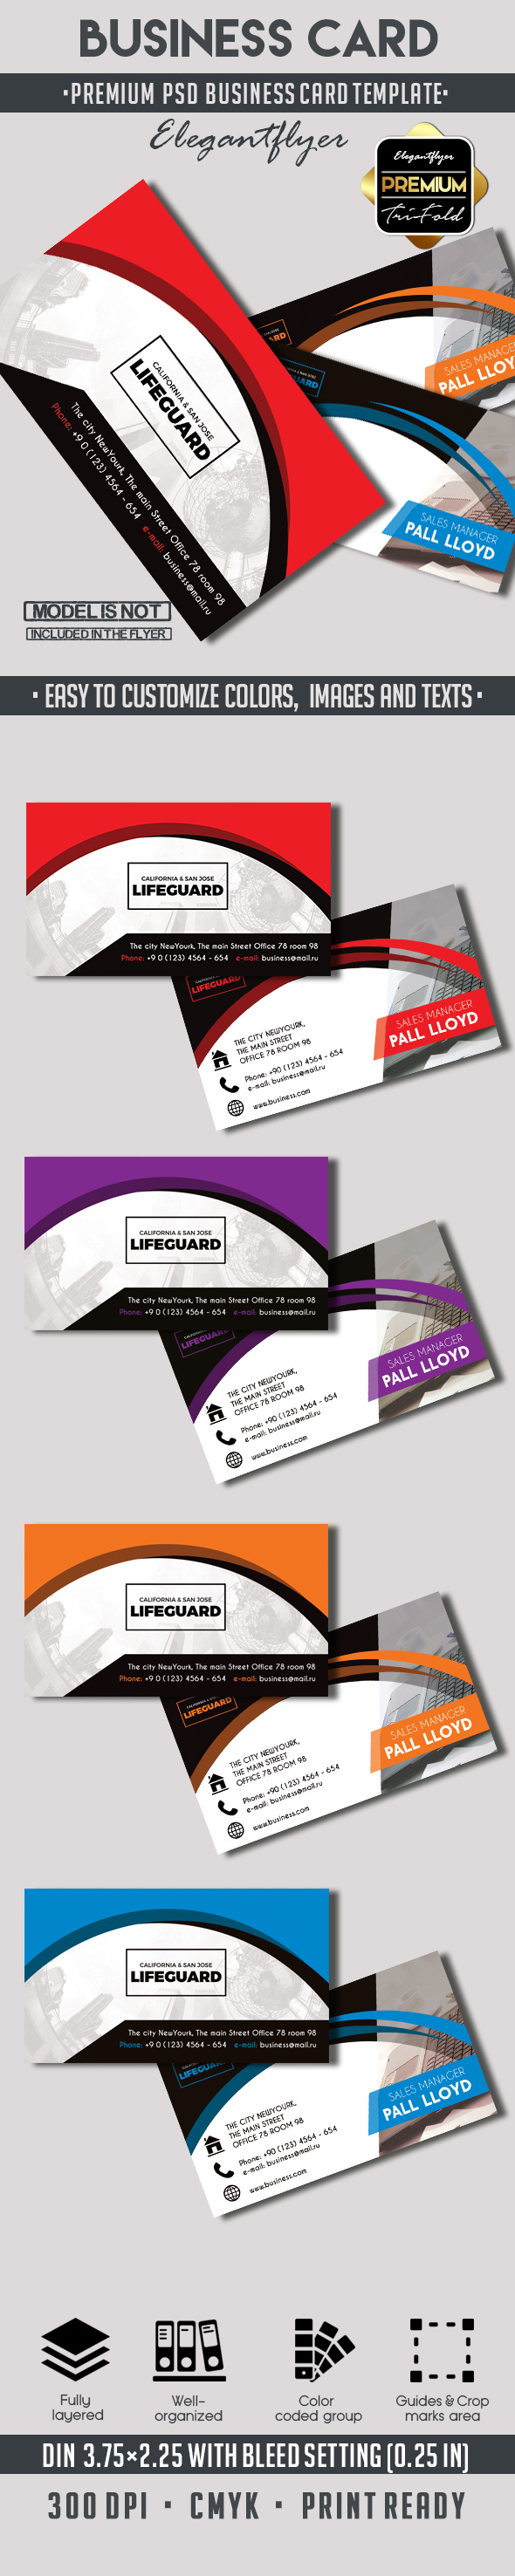 Business – Premium Business card PSD Template